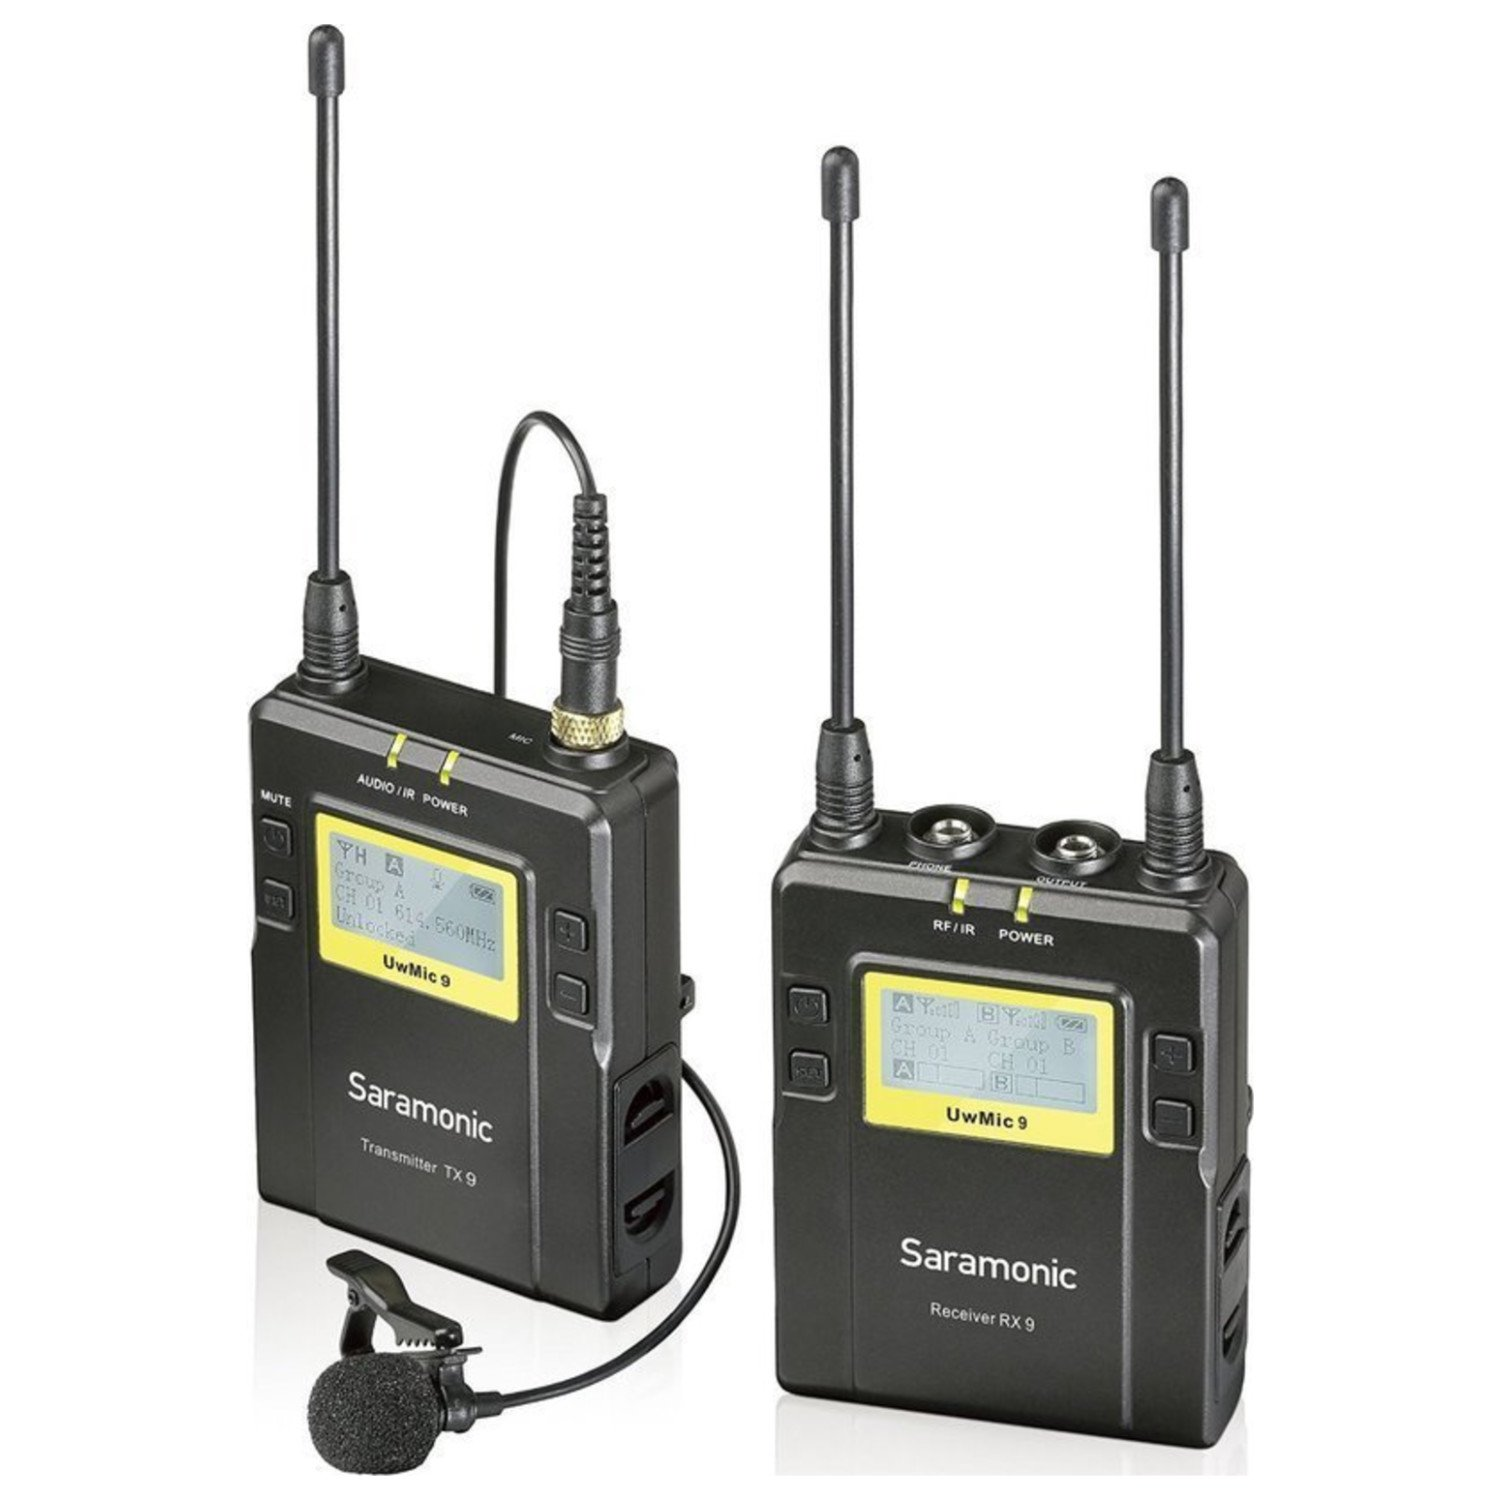 Saramonic UwMIC9 96-Channel Digital UHF Wireless Lavalier Microphone System, Includes RX9 Portable Receiver, TX9 Bodypack Transmitter